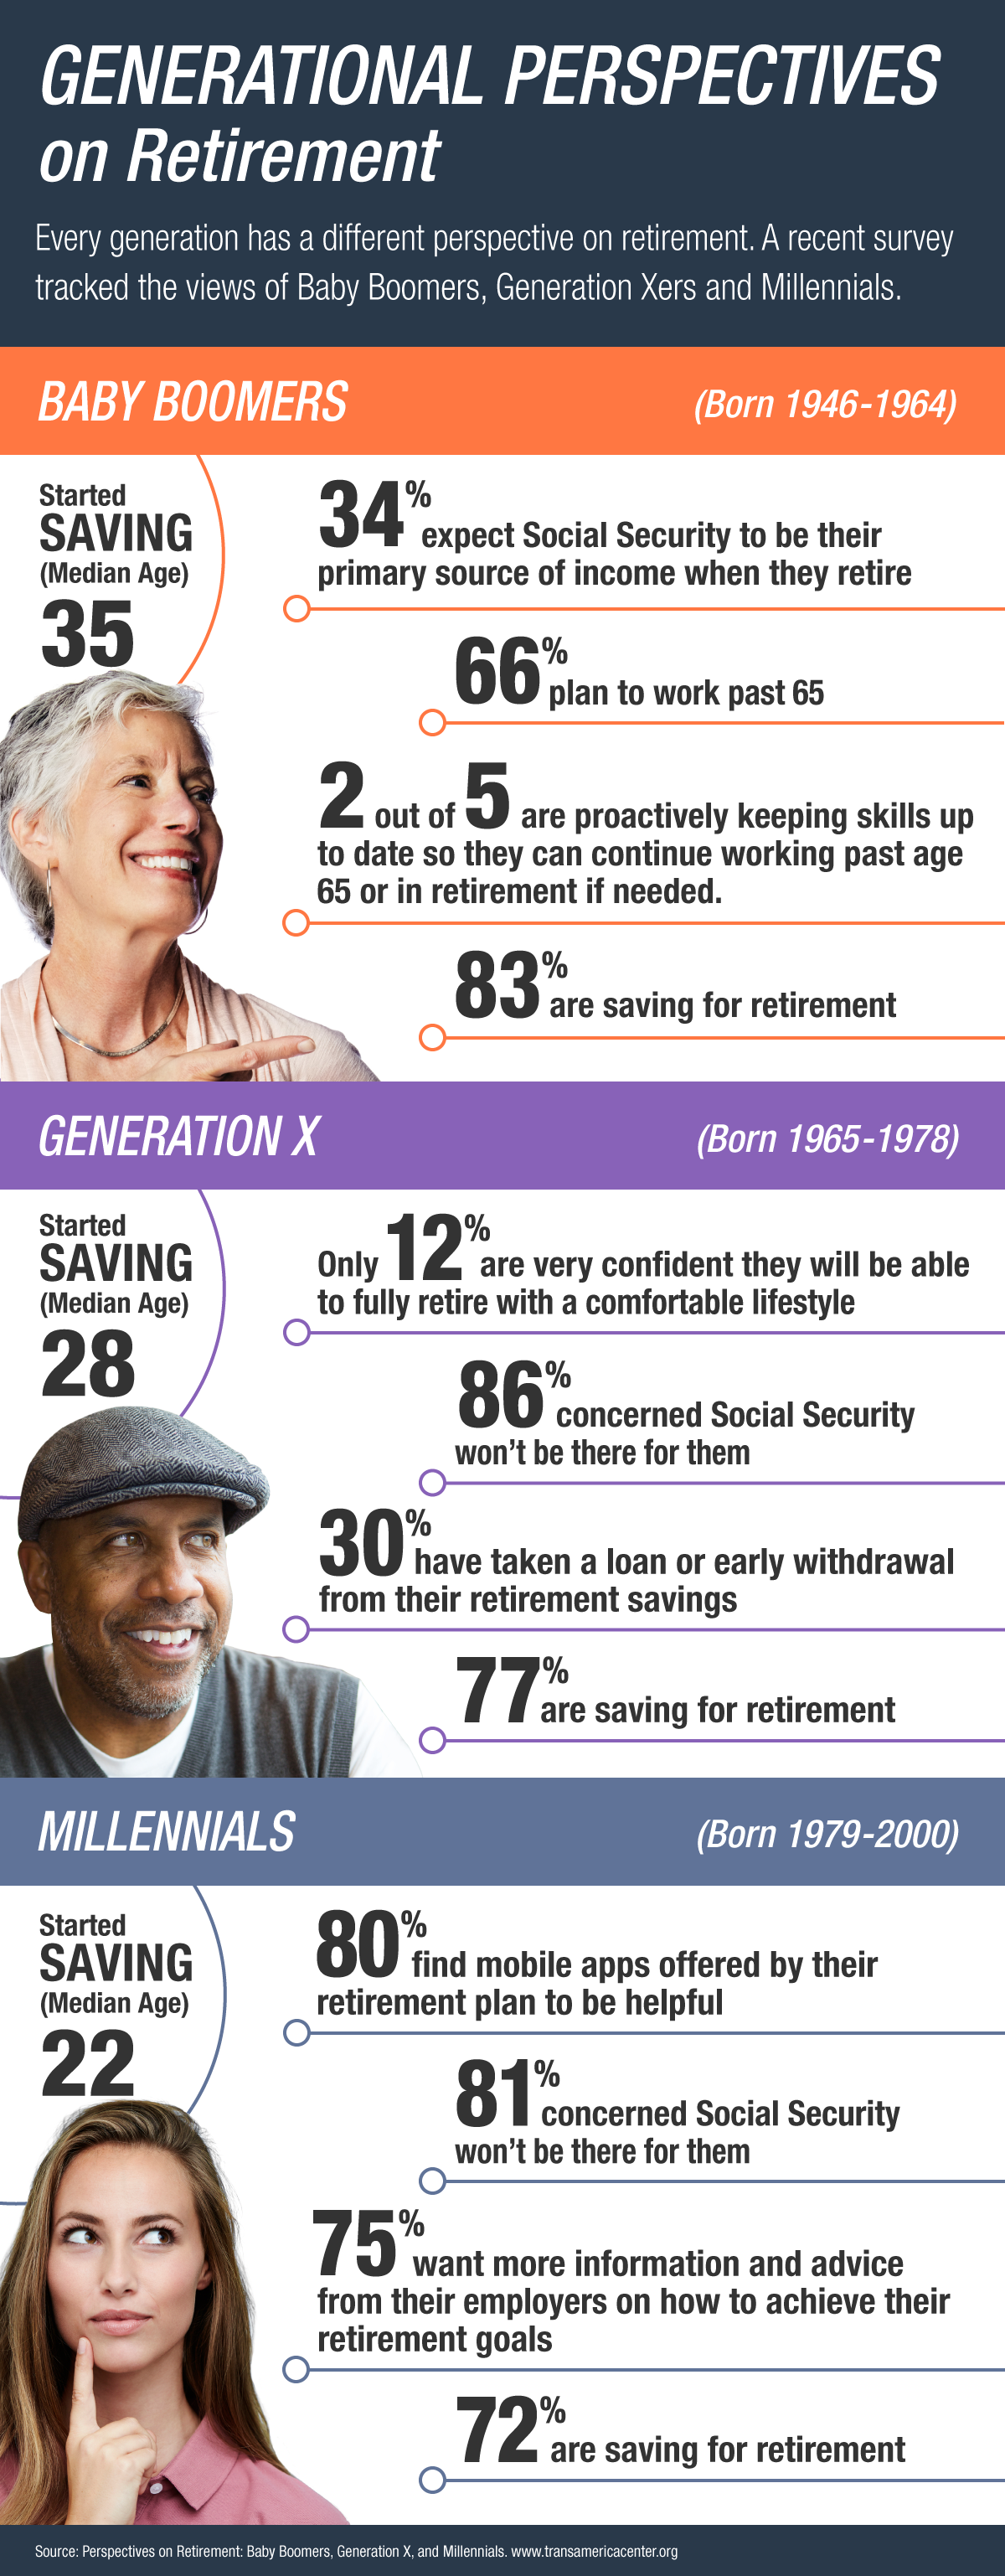 Generational Attitudes on Retirement